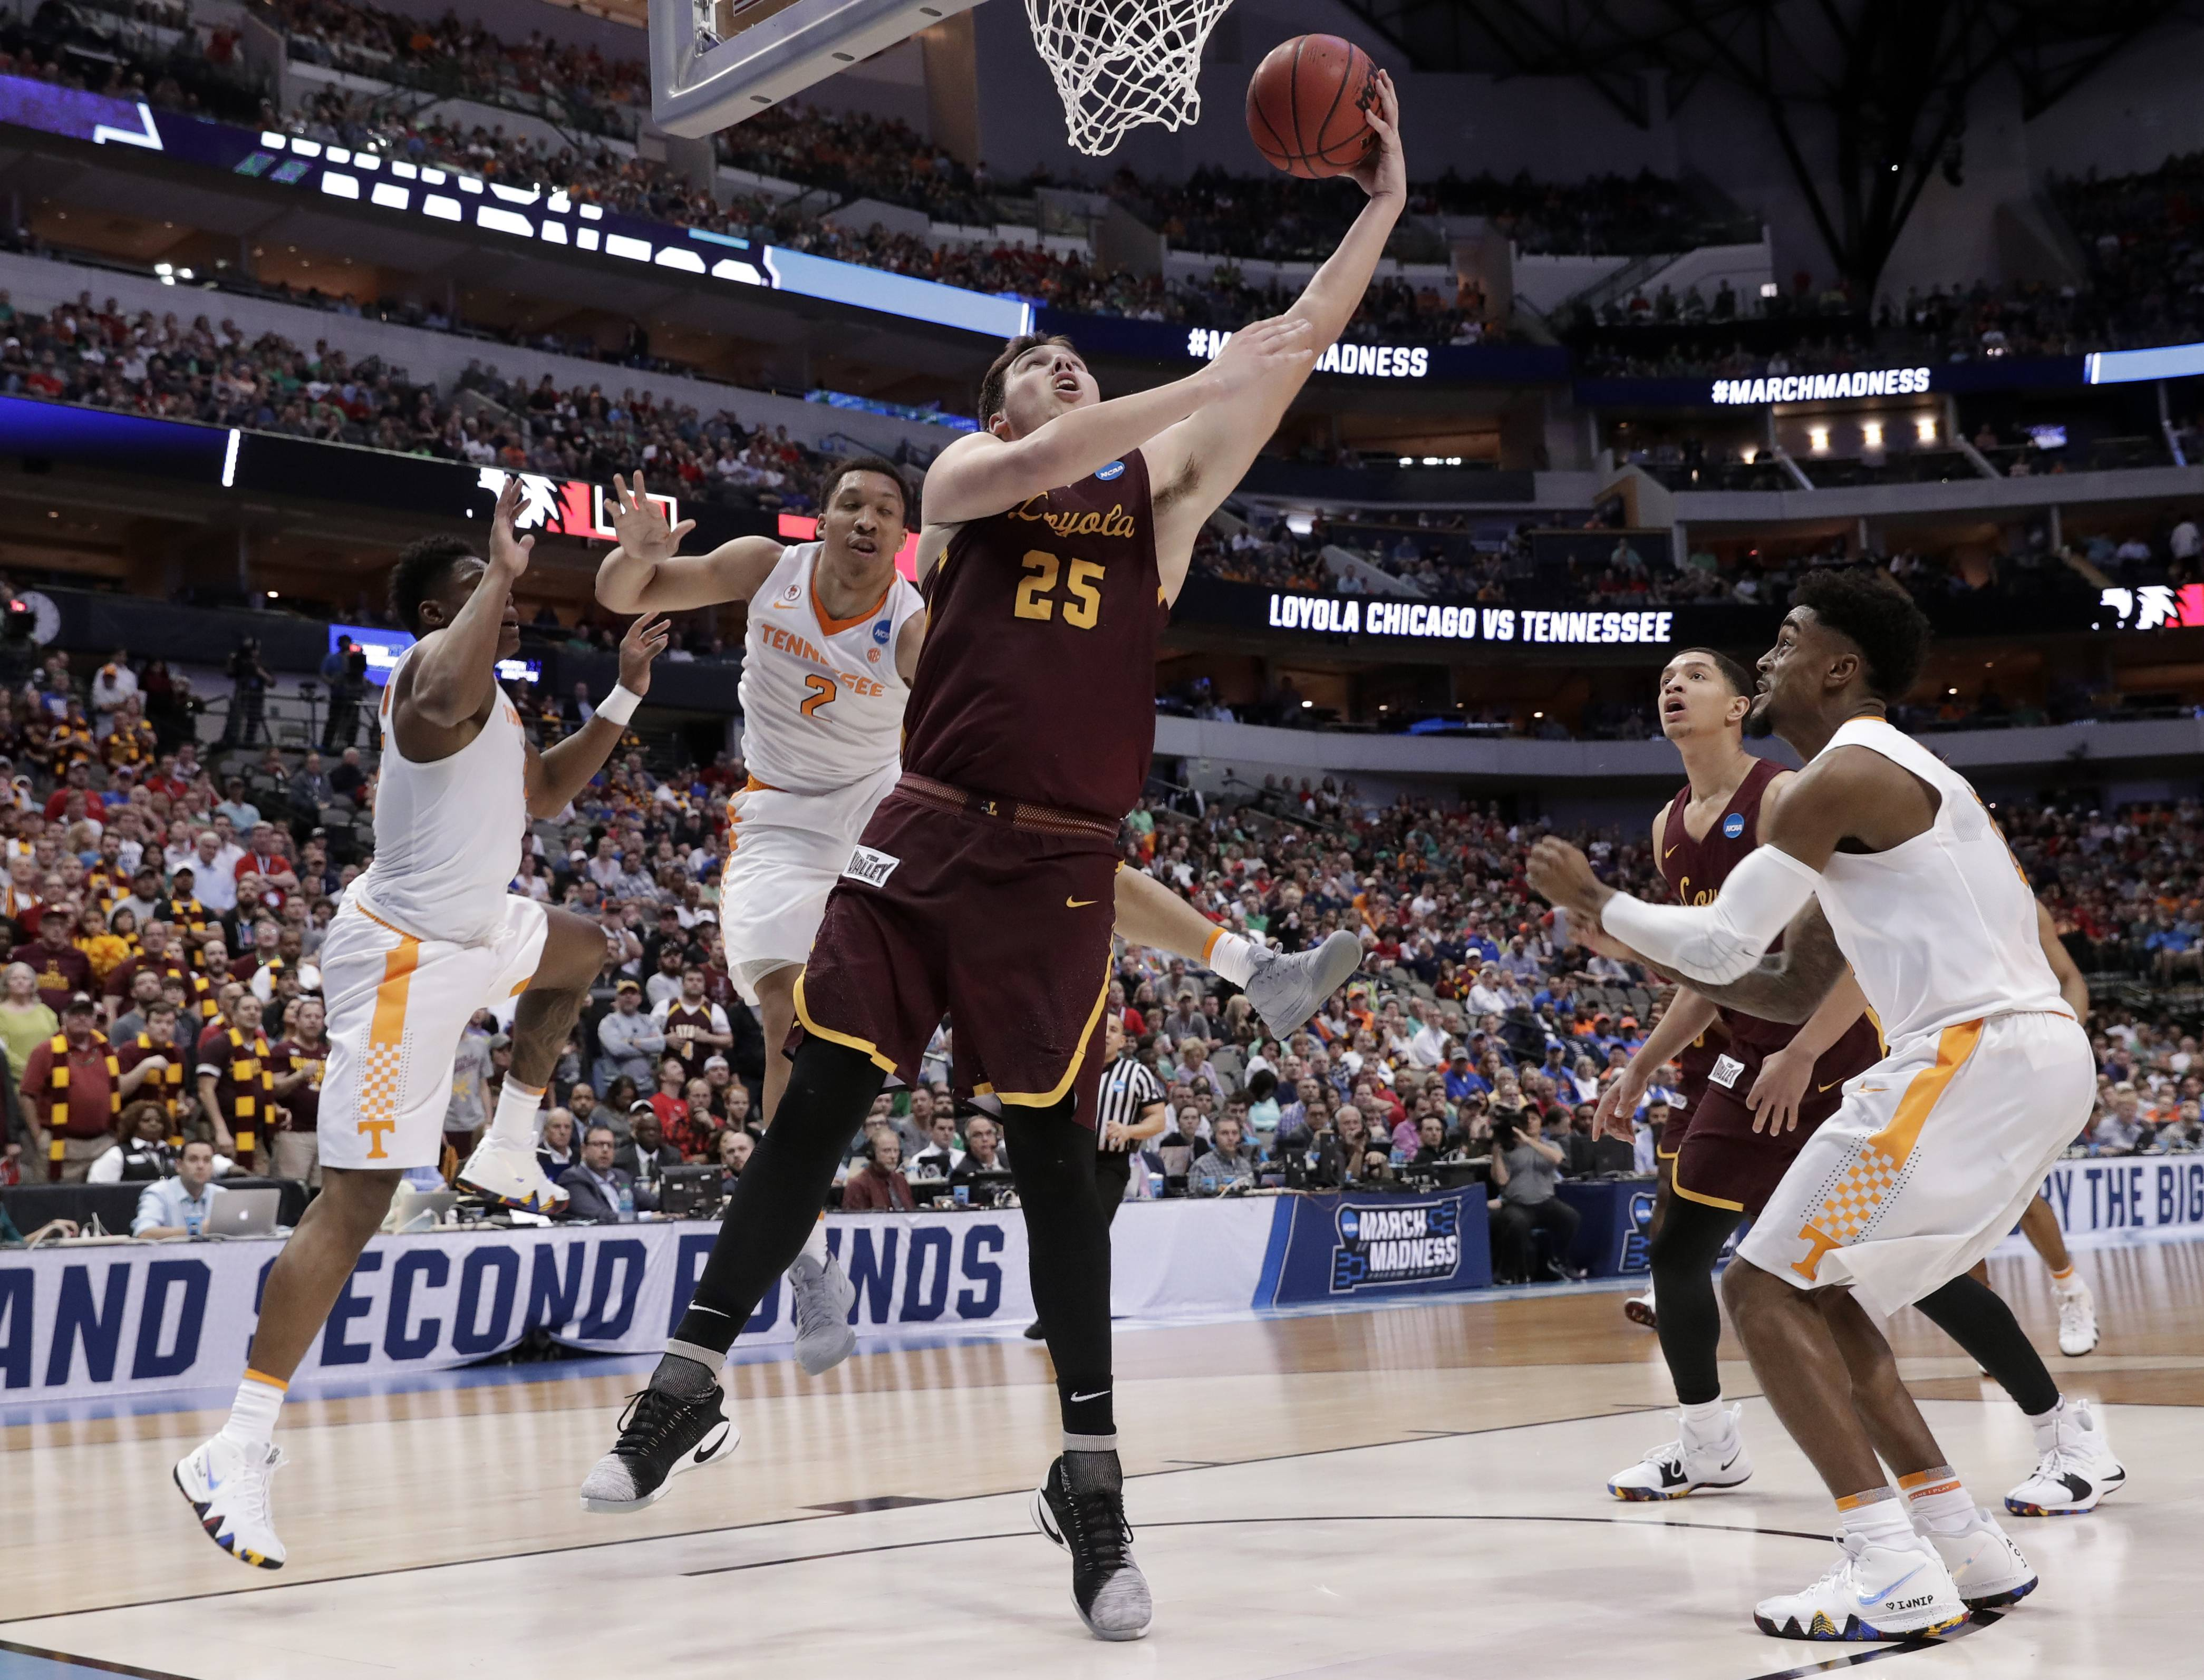 Loyola center Cameron Krutwig goes up for a shot after getting past a trio of Tennessee defenders in Saturday's second-round NCAA victory at Dallas. The all-around play of the freshman from Algonquin has been much appreciated by his Ramblers teammates. (AP Photo/Tony Gutierrez)